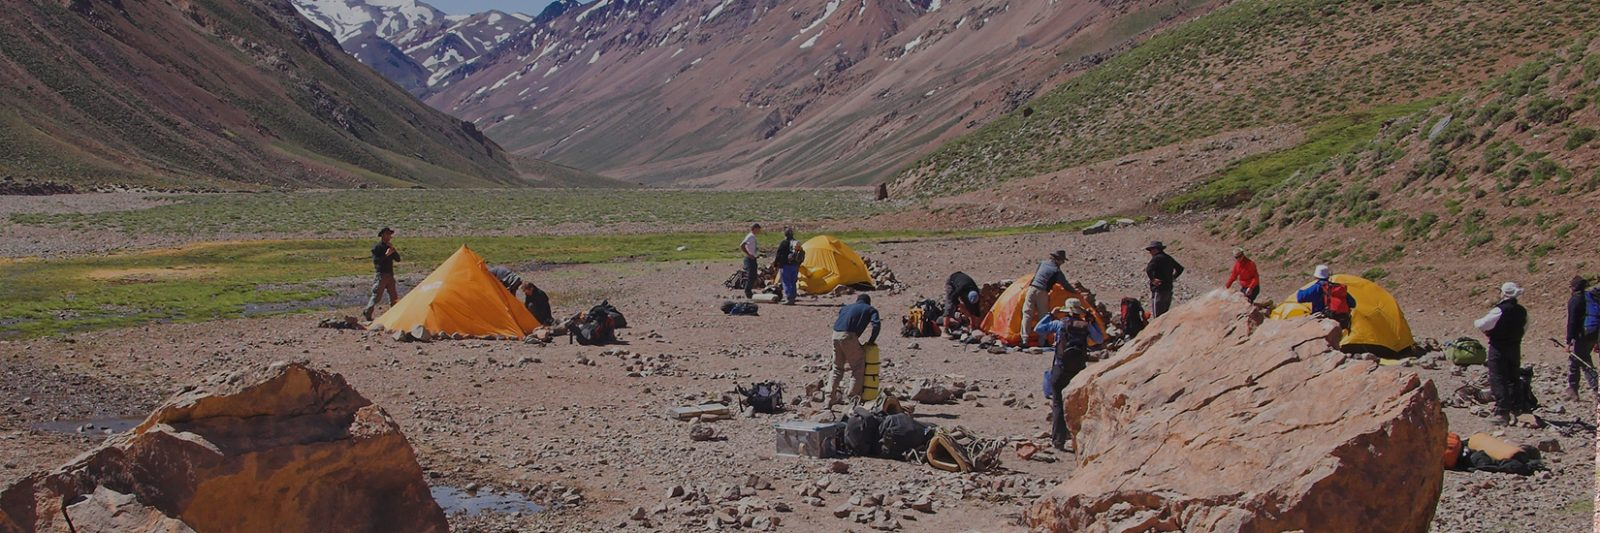 Packing for Aconcagua